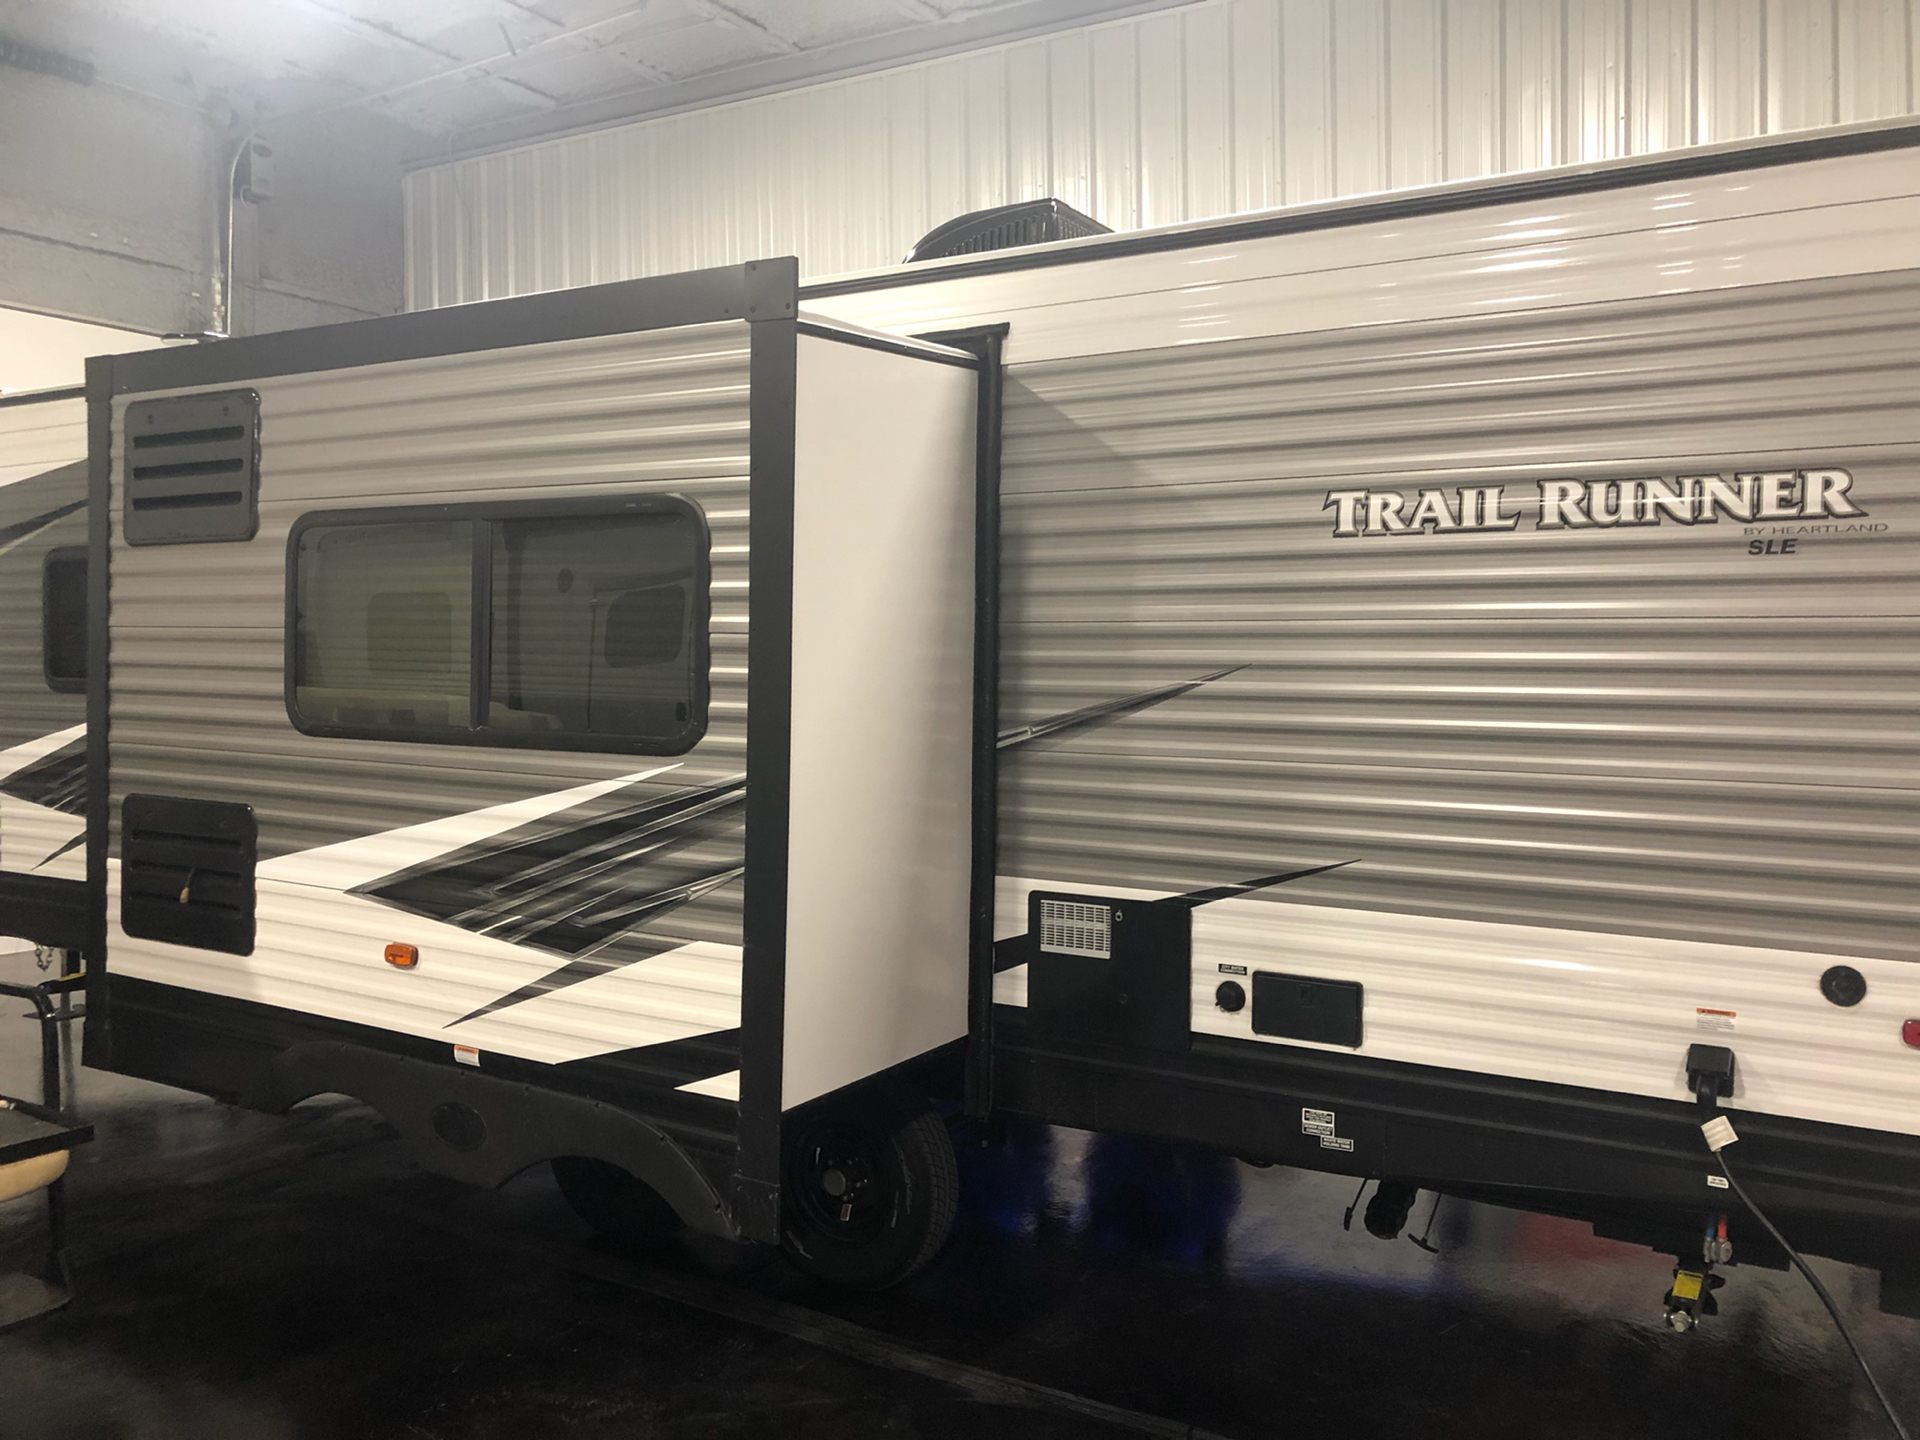 2019 Heartland Rvs TR 261SLE in Wolfforth, Texas